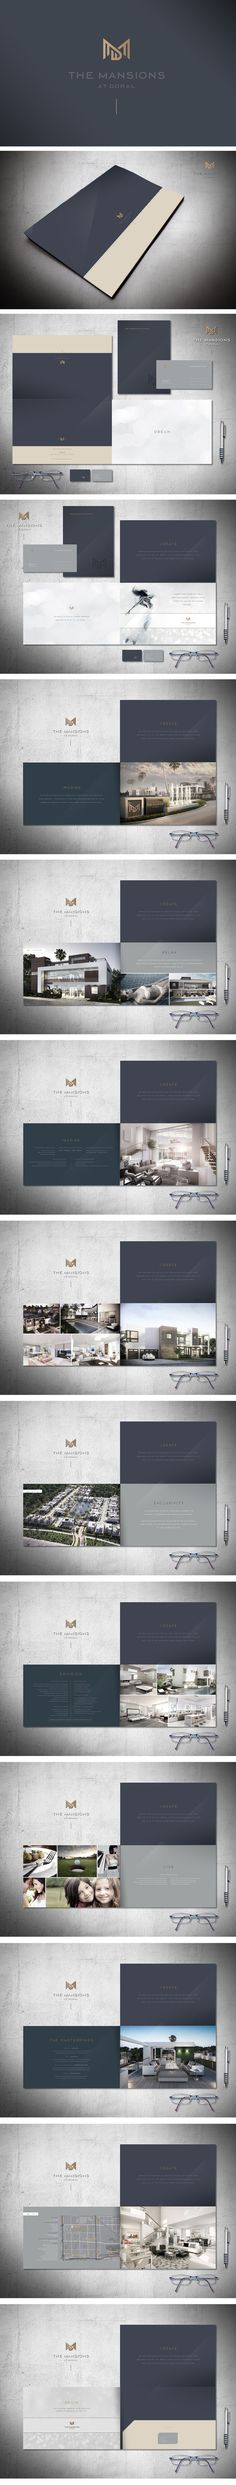 Agatha O | The Mansions at Doral - Brochure Luxury Residential Units in Doral, Miami, FL. A little dark but again the overall effect is one of wealth - A Luxury Life For You